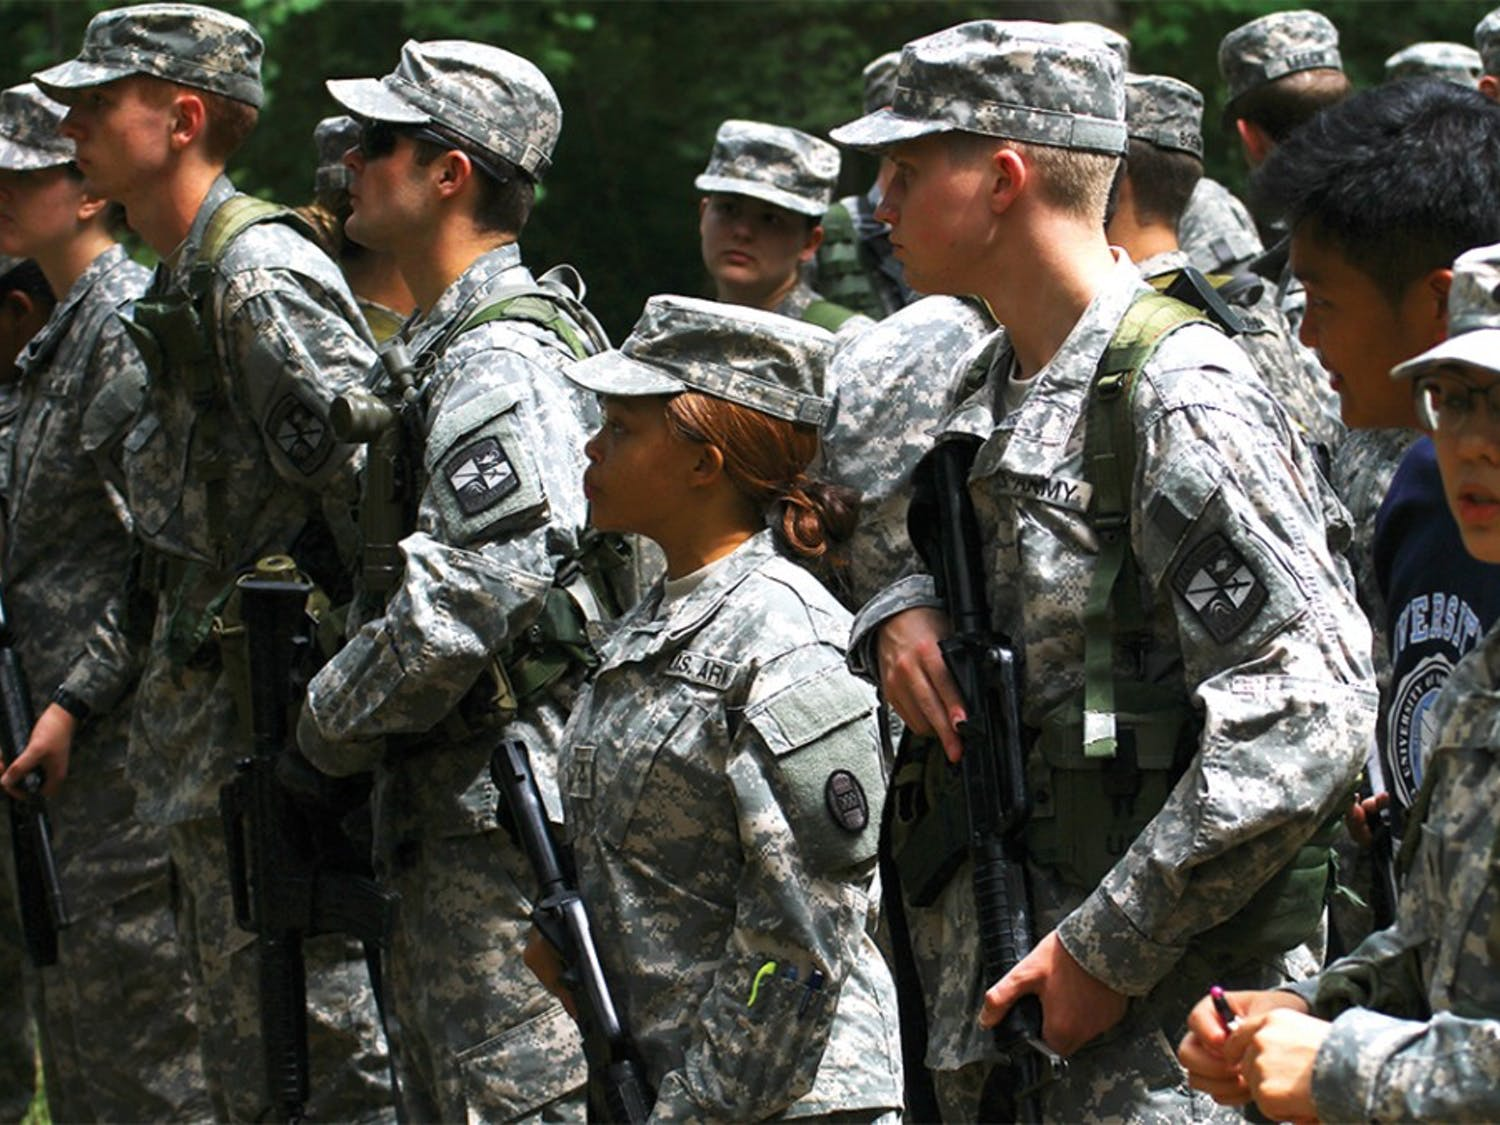 ROTC students get ready for practice on Wednesday, Sept. 16.